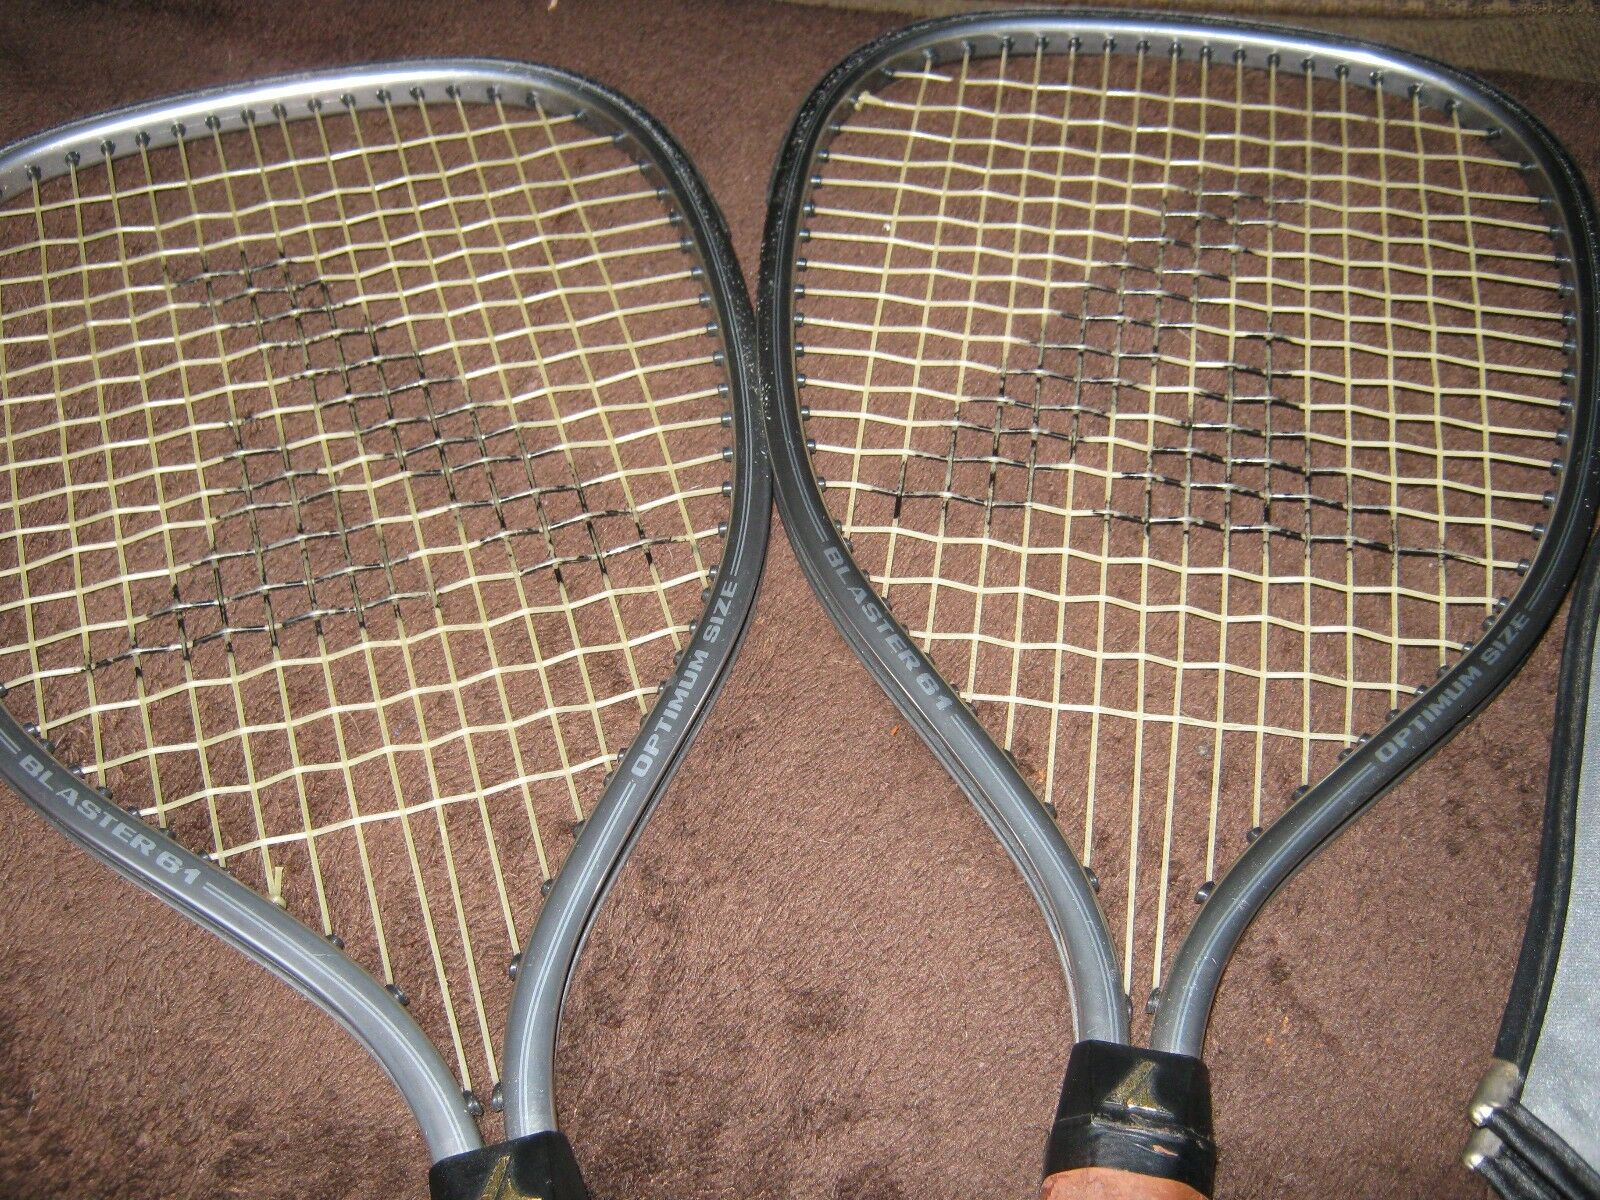 (2) Pro Kennex Racquets Blaster 61- 3 7 8 grip w Covers-FREE SHIPPING